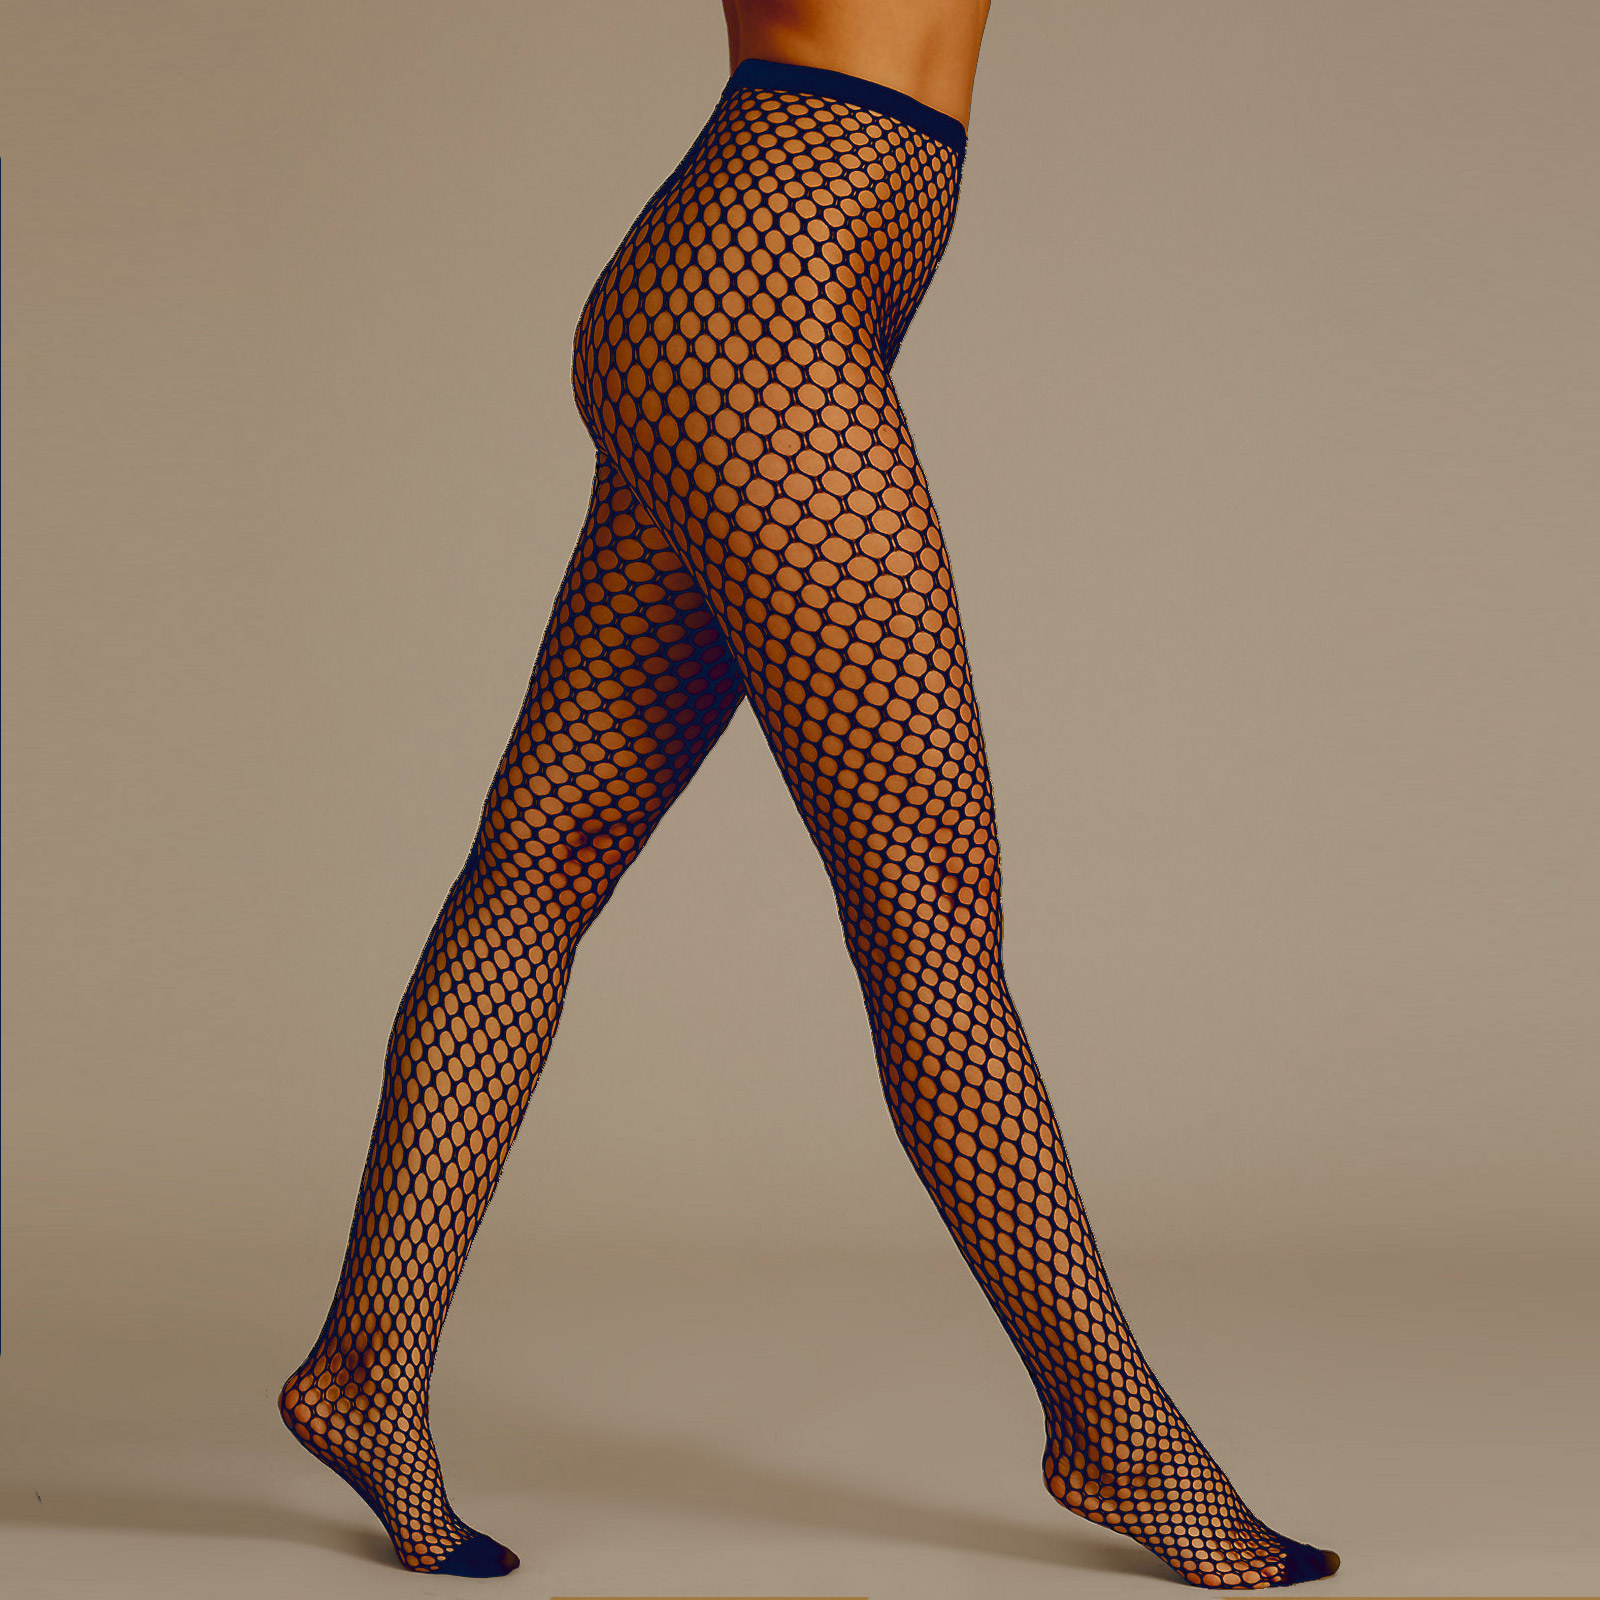 7c73c2a2b6e M S Black Navy Taupe Large Sexy Fishnet Tights S-XL Plus Size Net ...